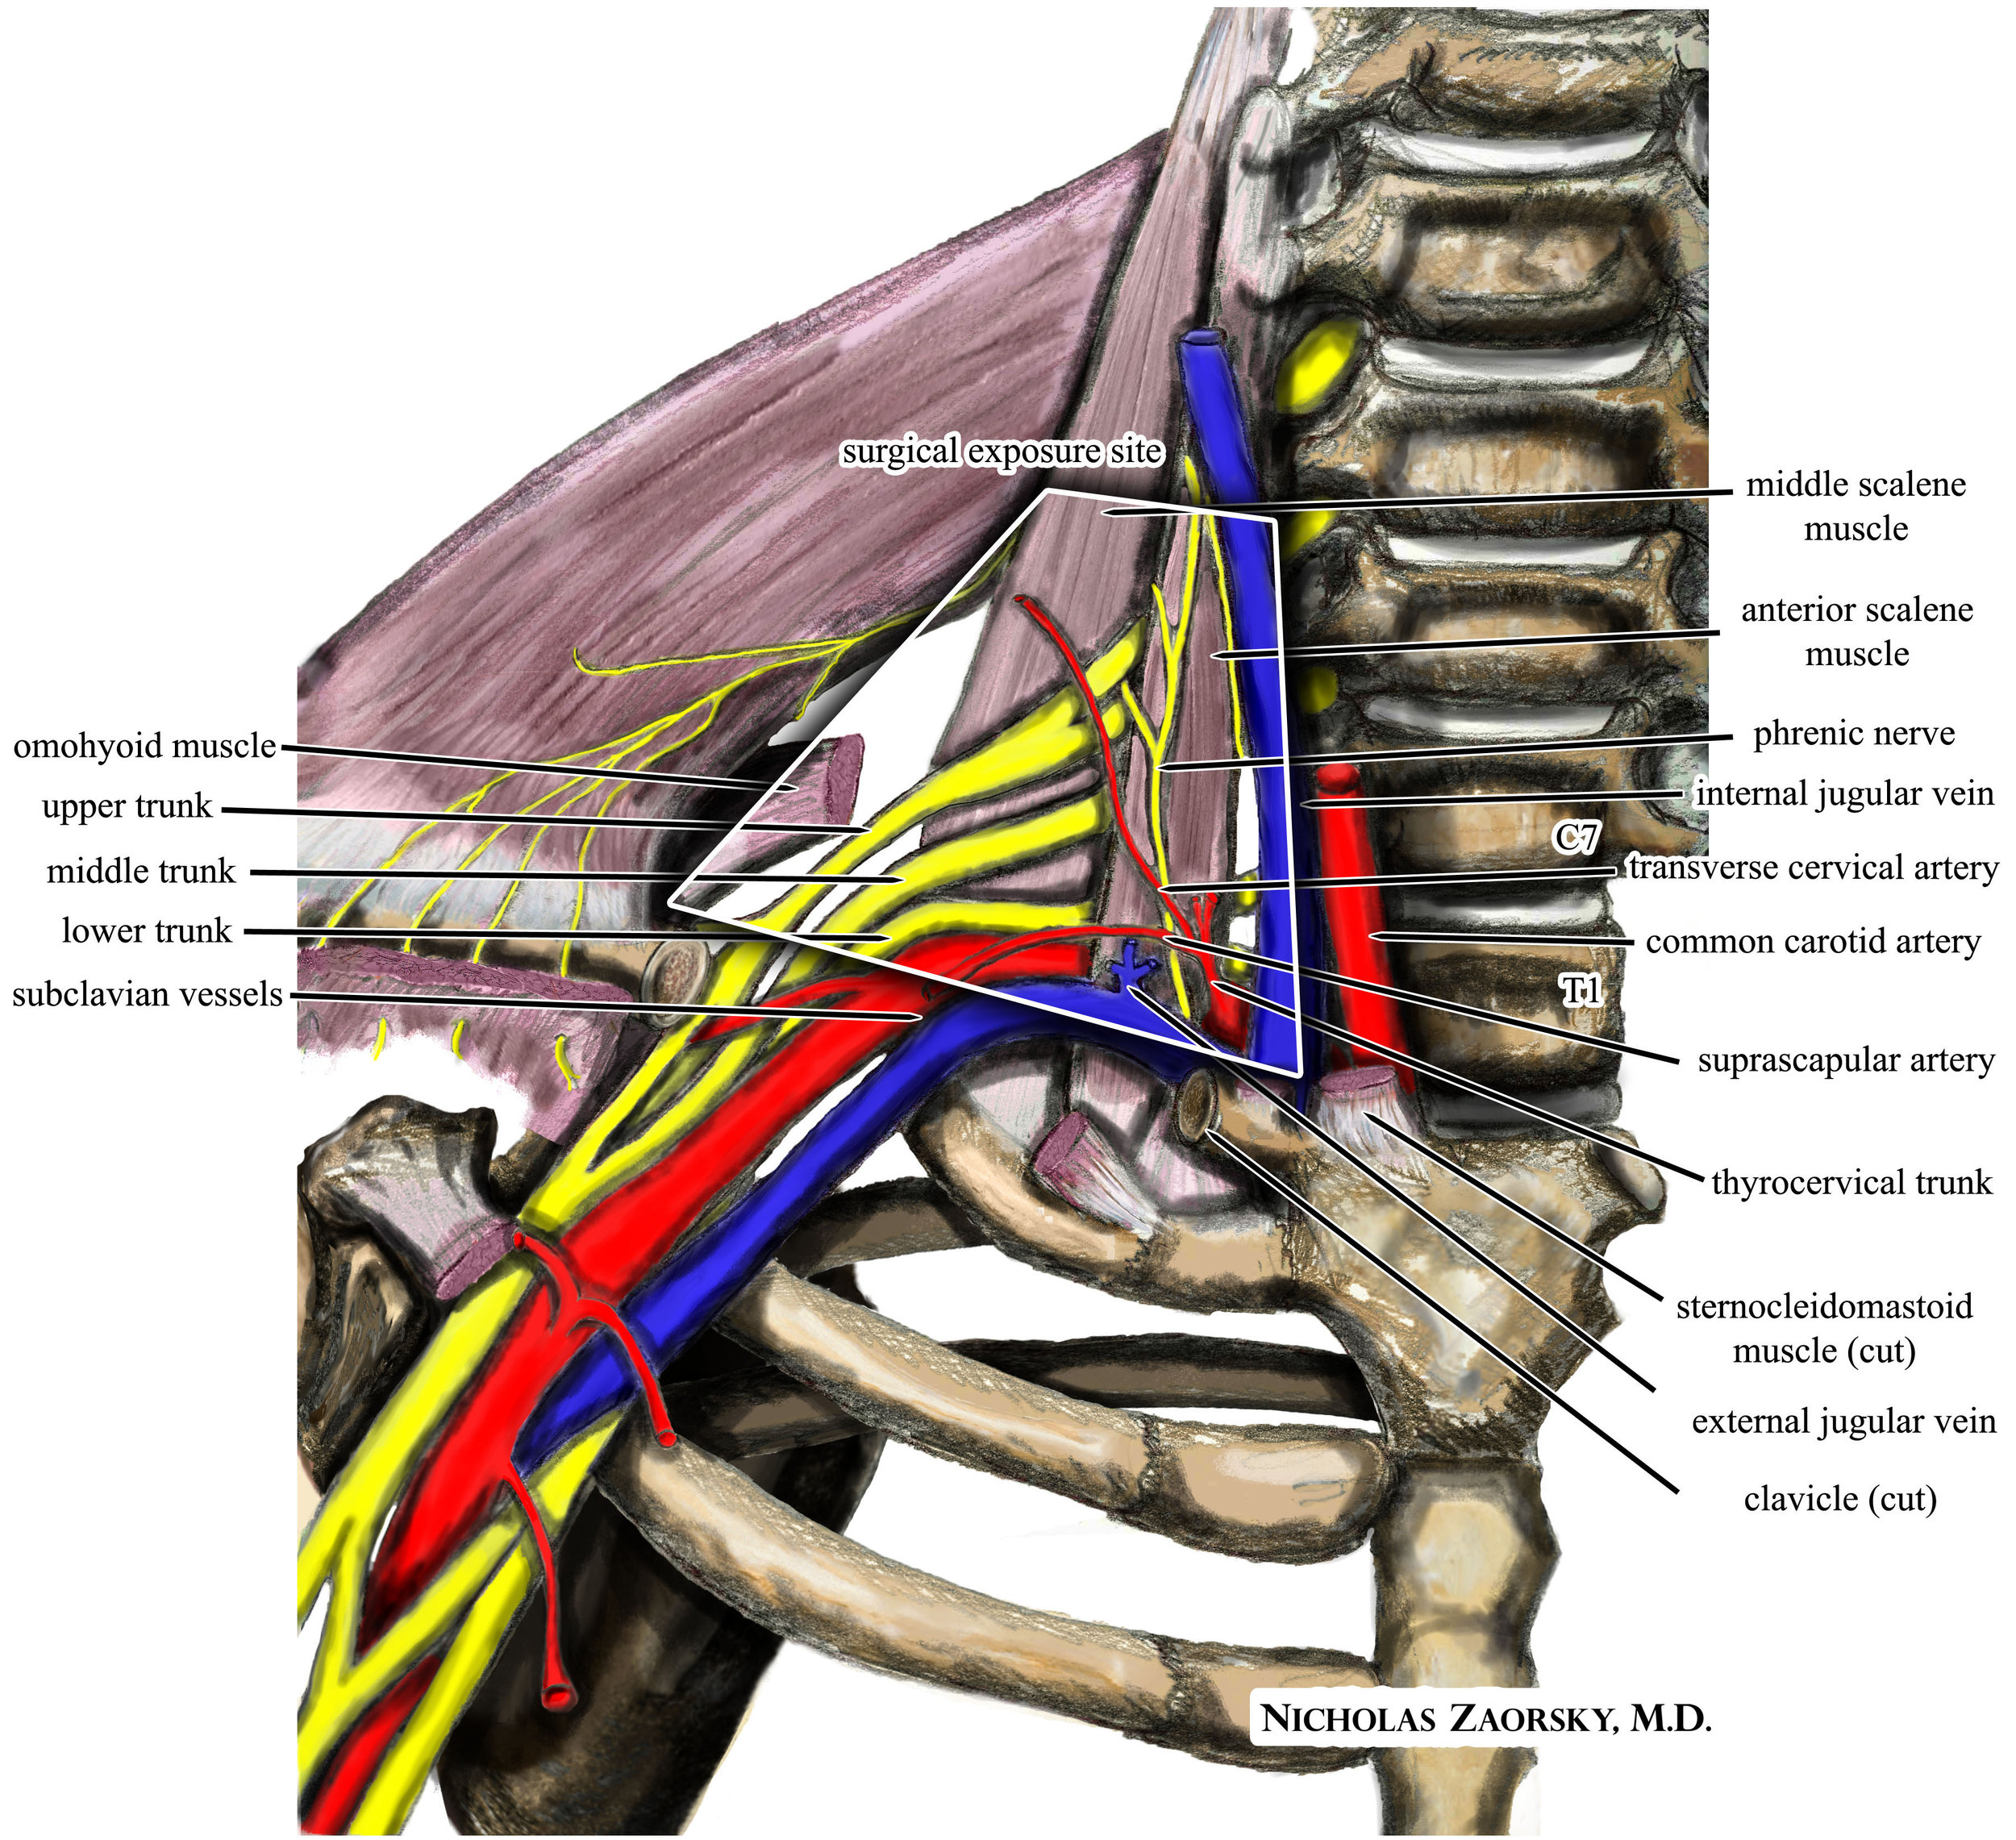 Wikipedia_medical_illustration_thoracic_outlet_syndrome_brachial_plexus_anatomy_with_labels.jpg